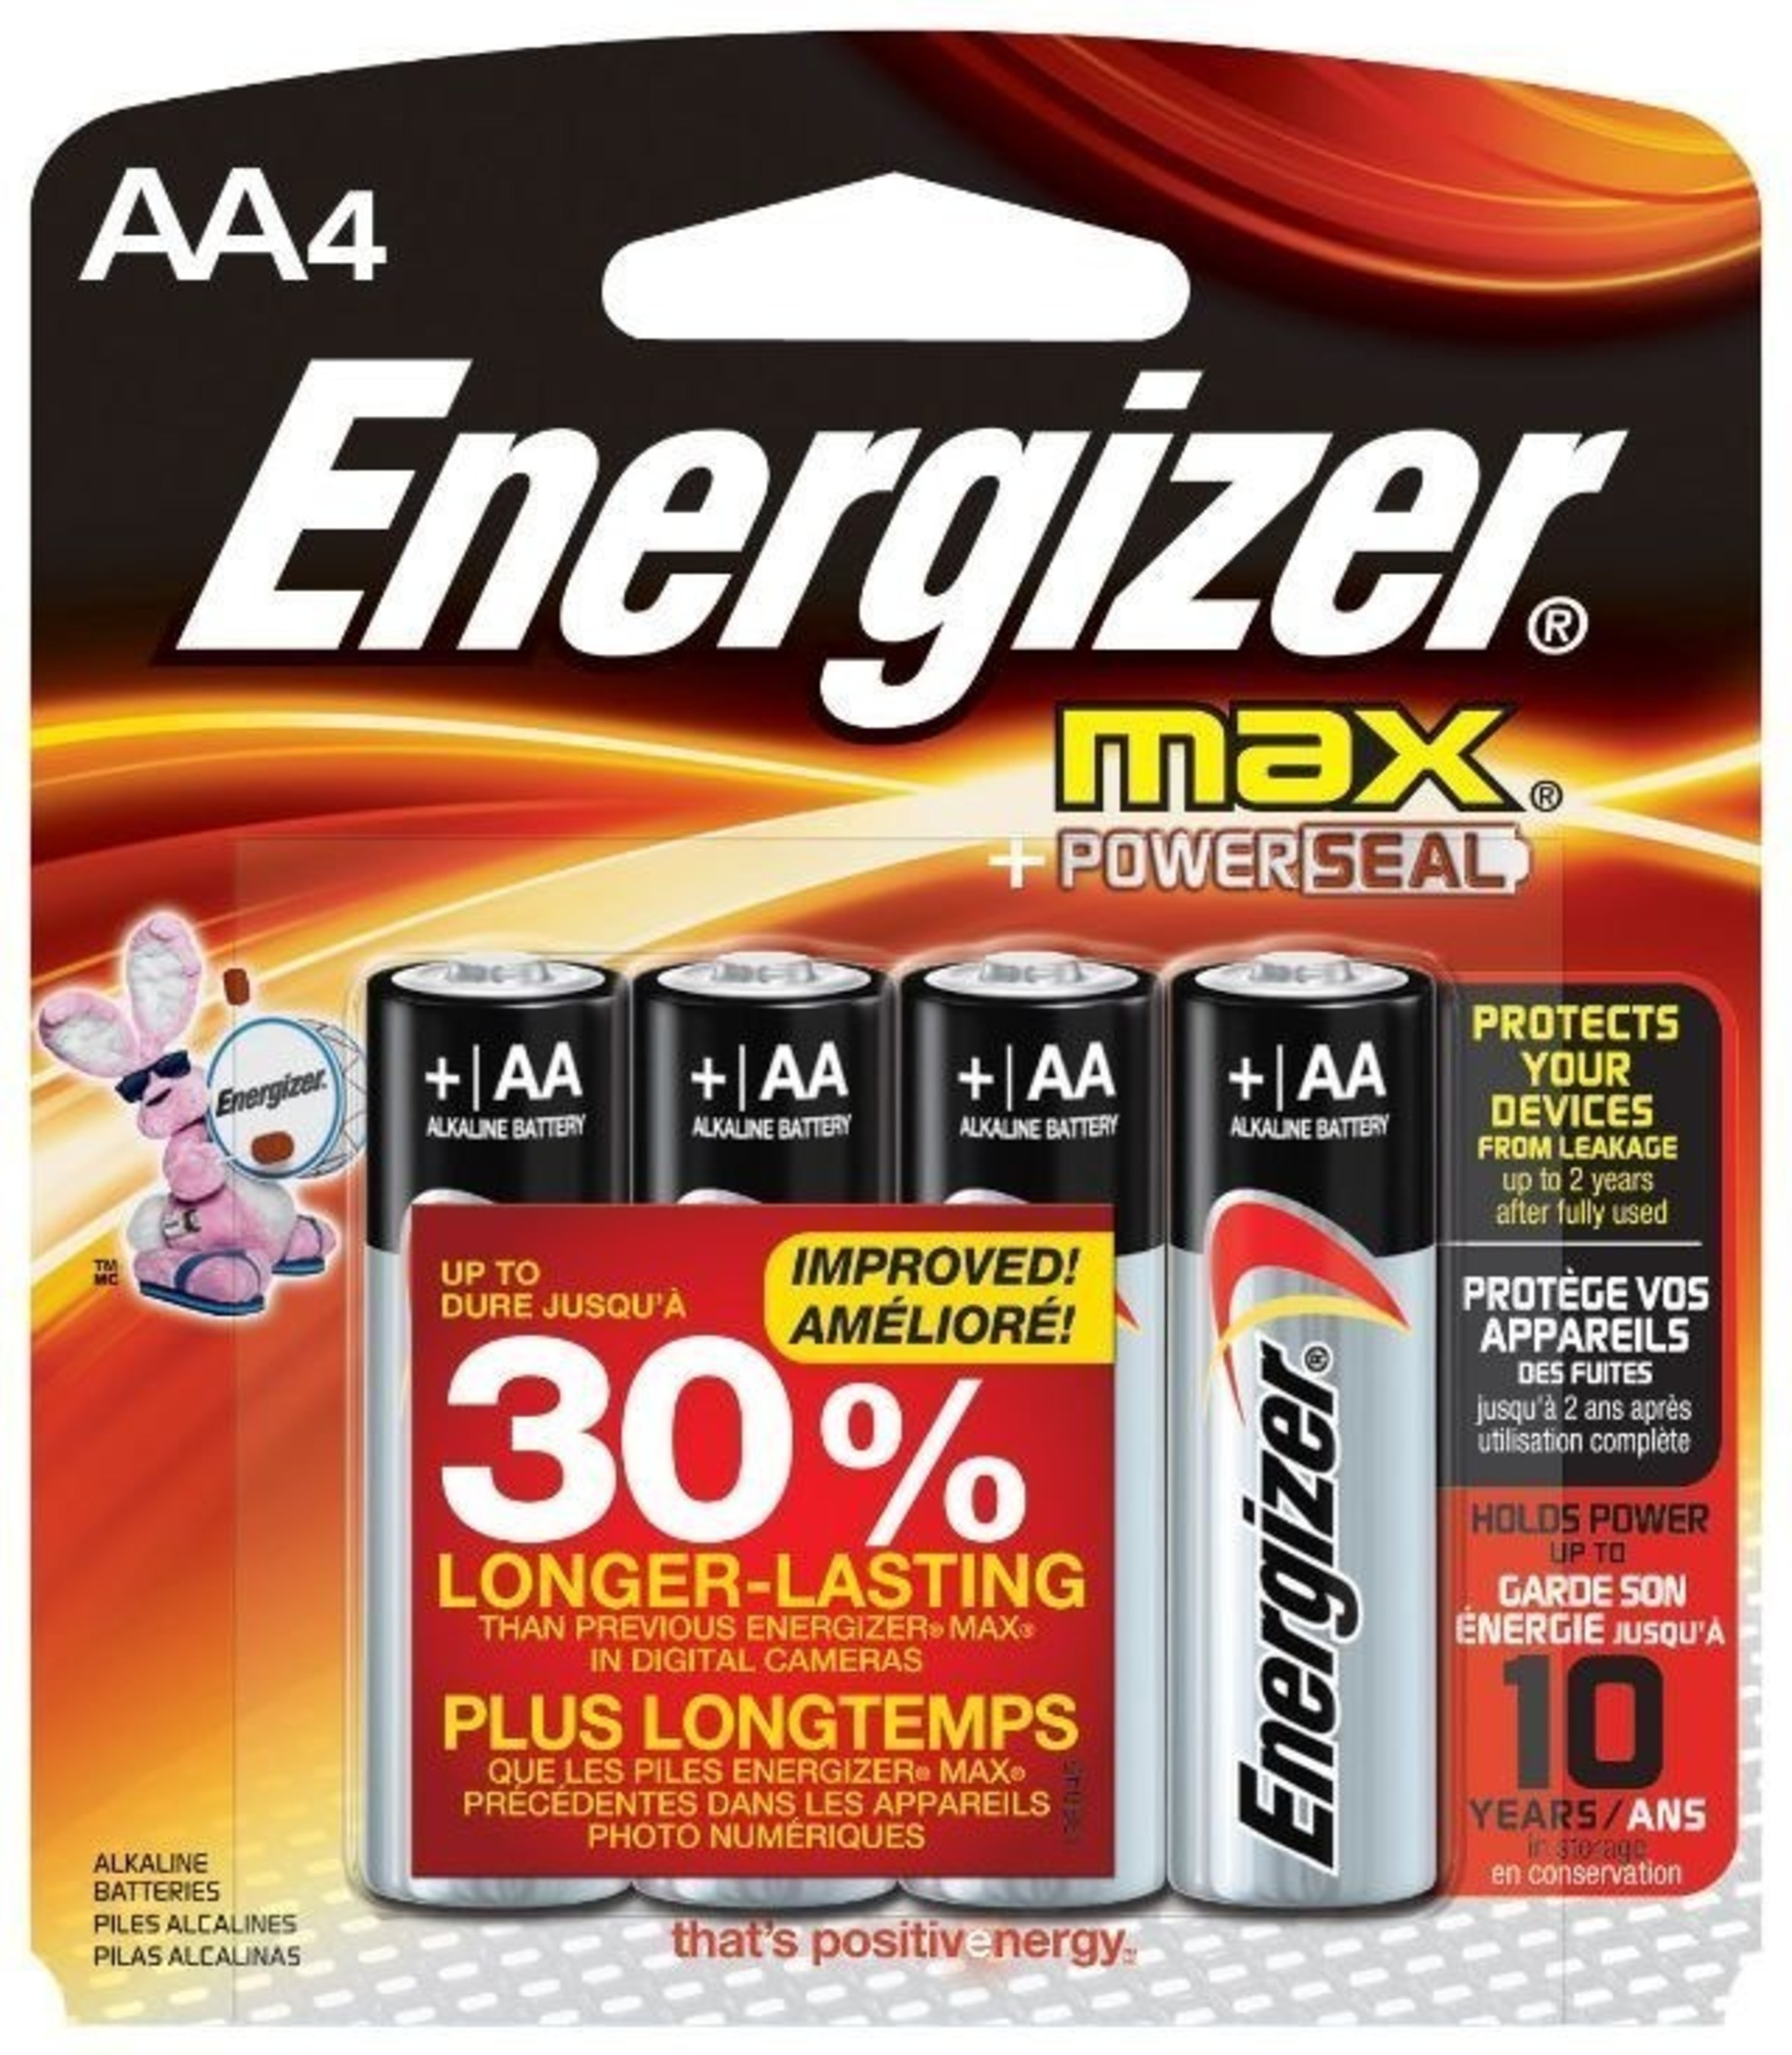 The improved Energizer MAX(R) batteries last up to 30 percent longer than previous Energizer MAX(R) AA batteries in digital cameras, giving consumers the power to do more of what they love. They also offer leakage protection through Power Seal Technology for up to two years after fully used- giving consumers peace of mind that their cameras, toys and other valuable devices are protected with Energizer MAX(R) batteries.